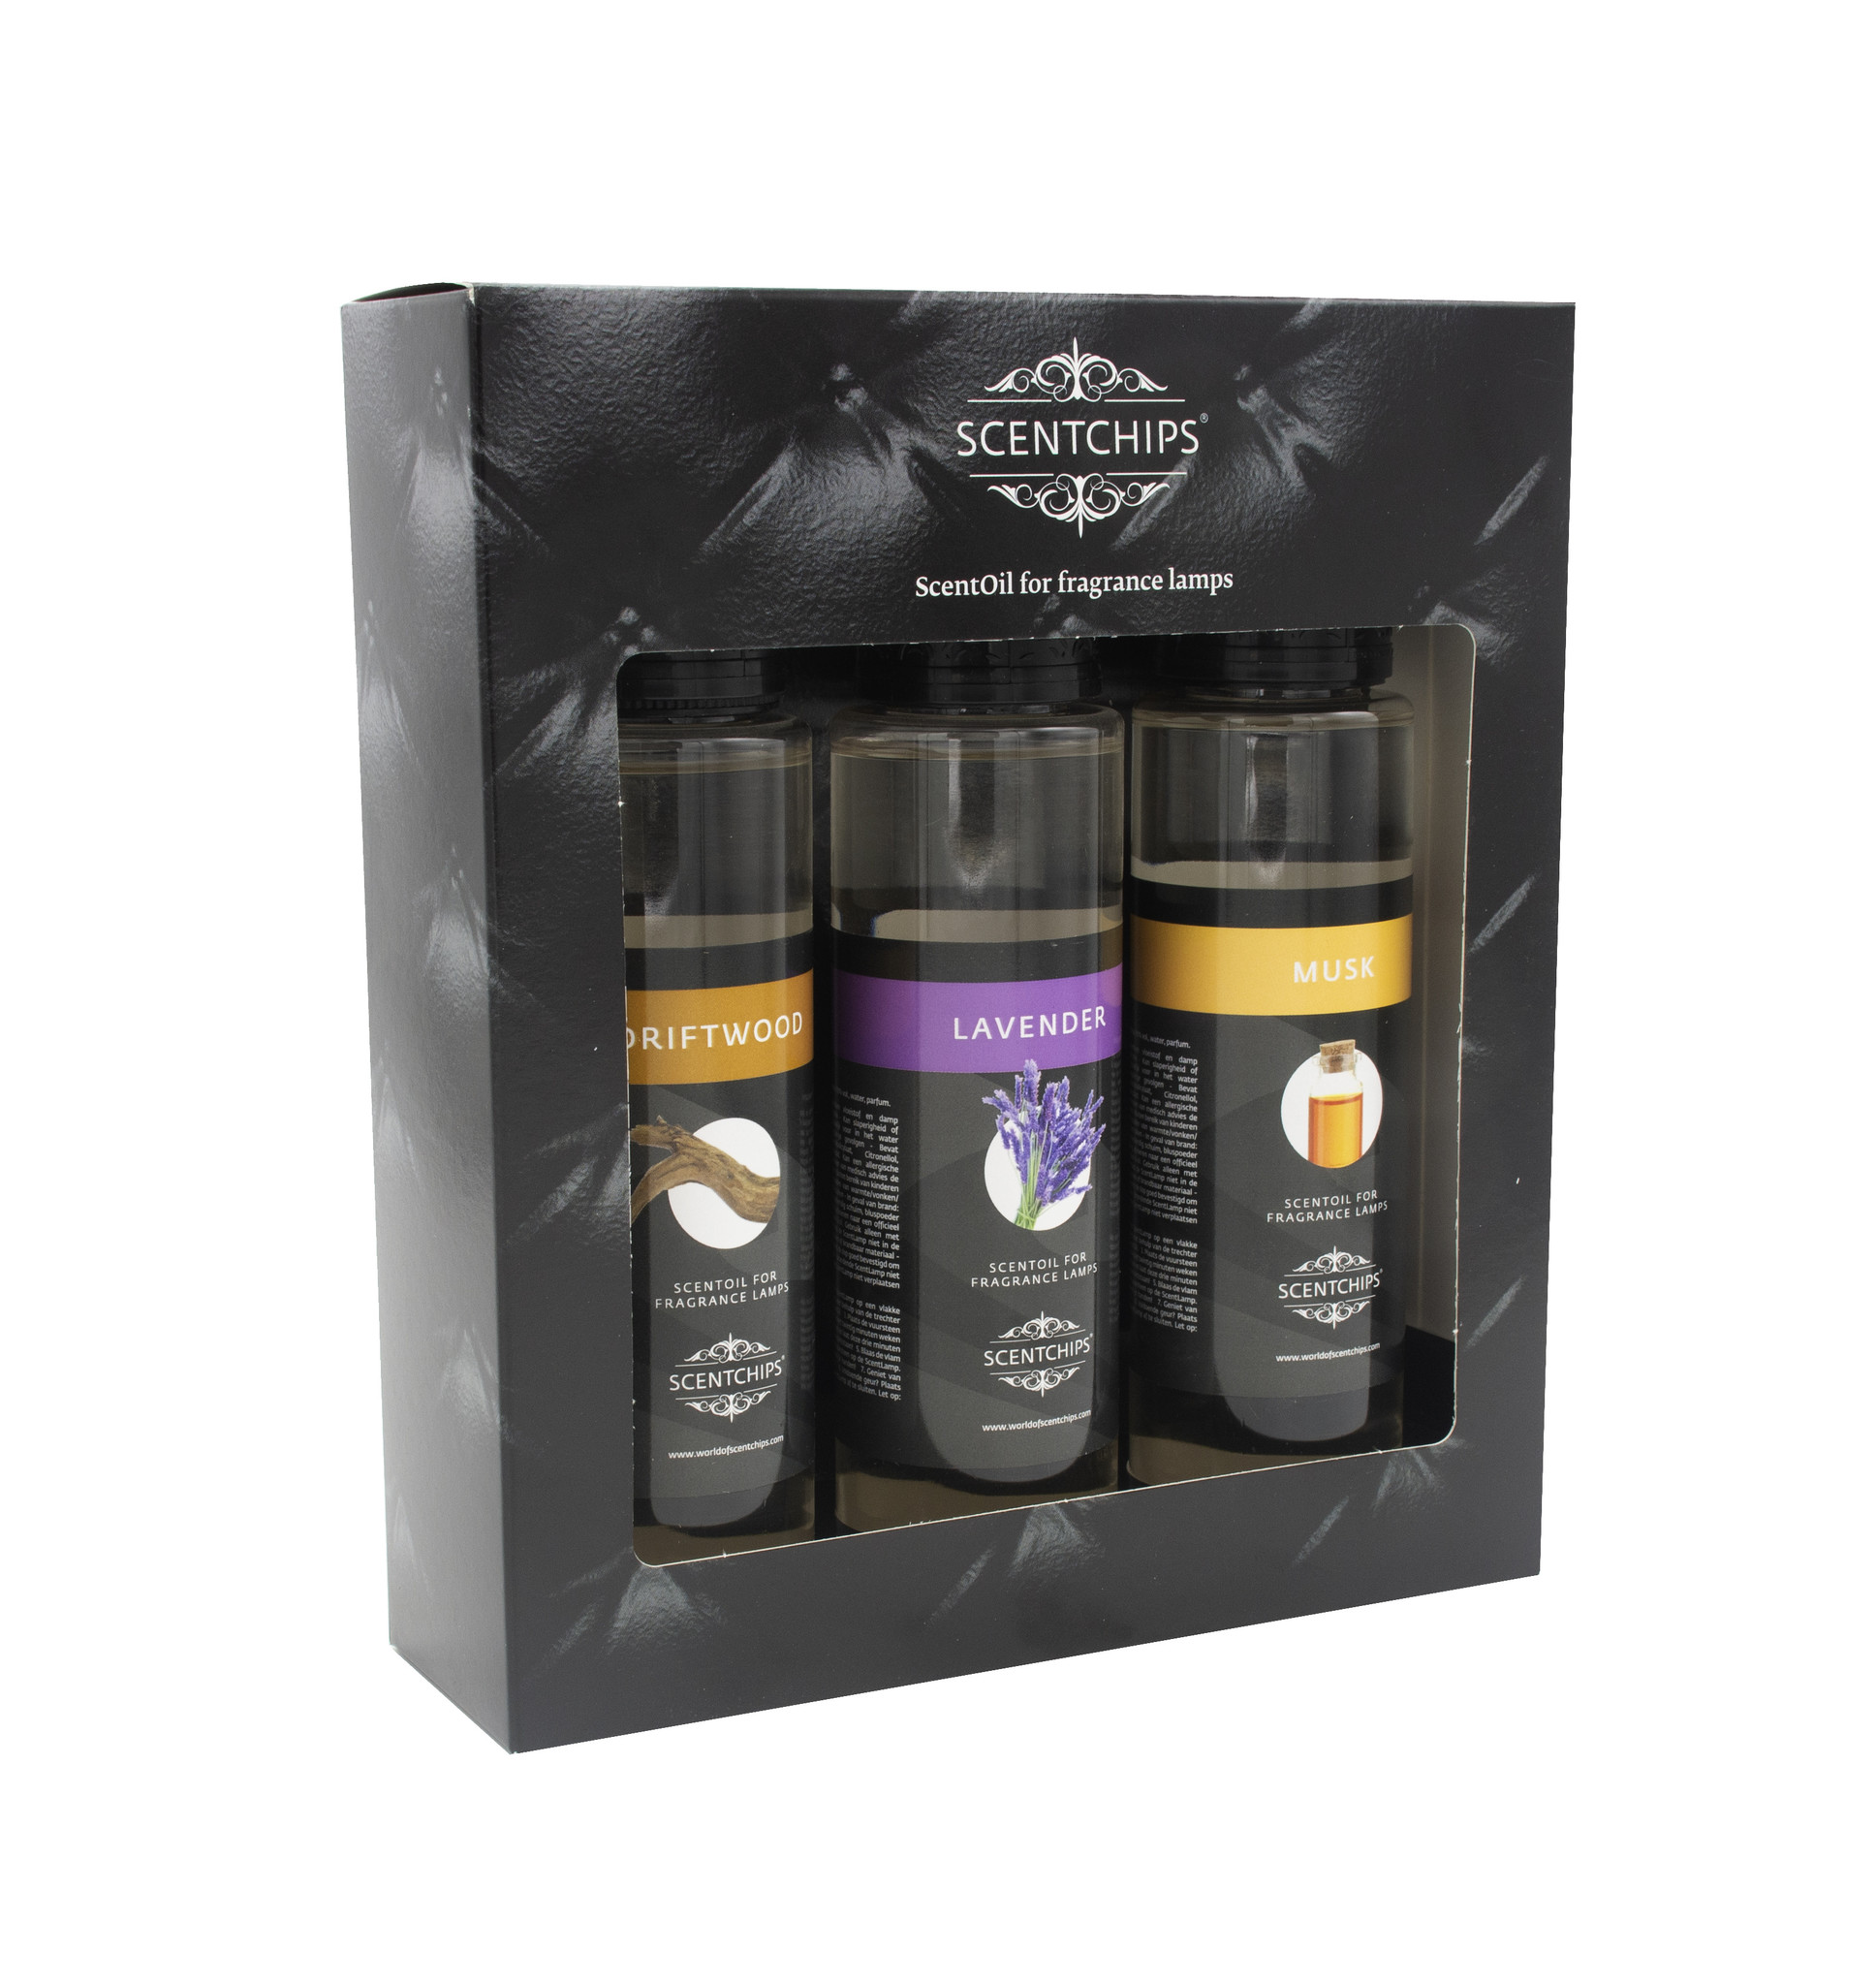 Giftset 3x 200ml-Driftwood-Lavender-Musk  Gift set ScentGifts